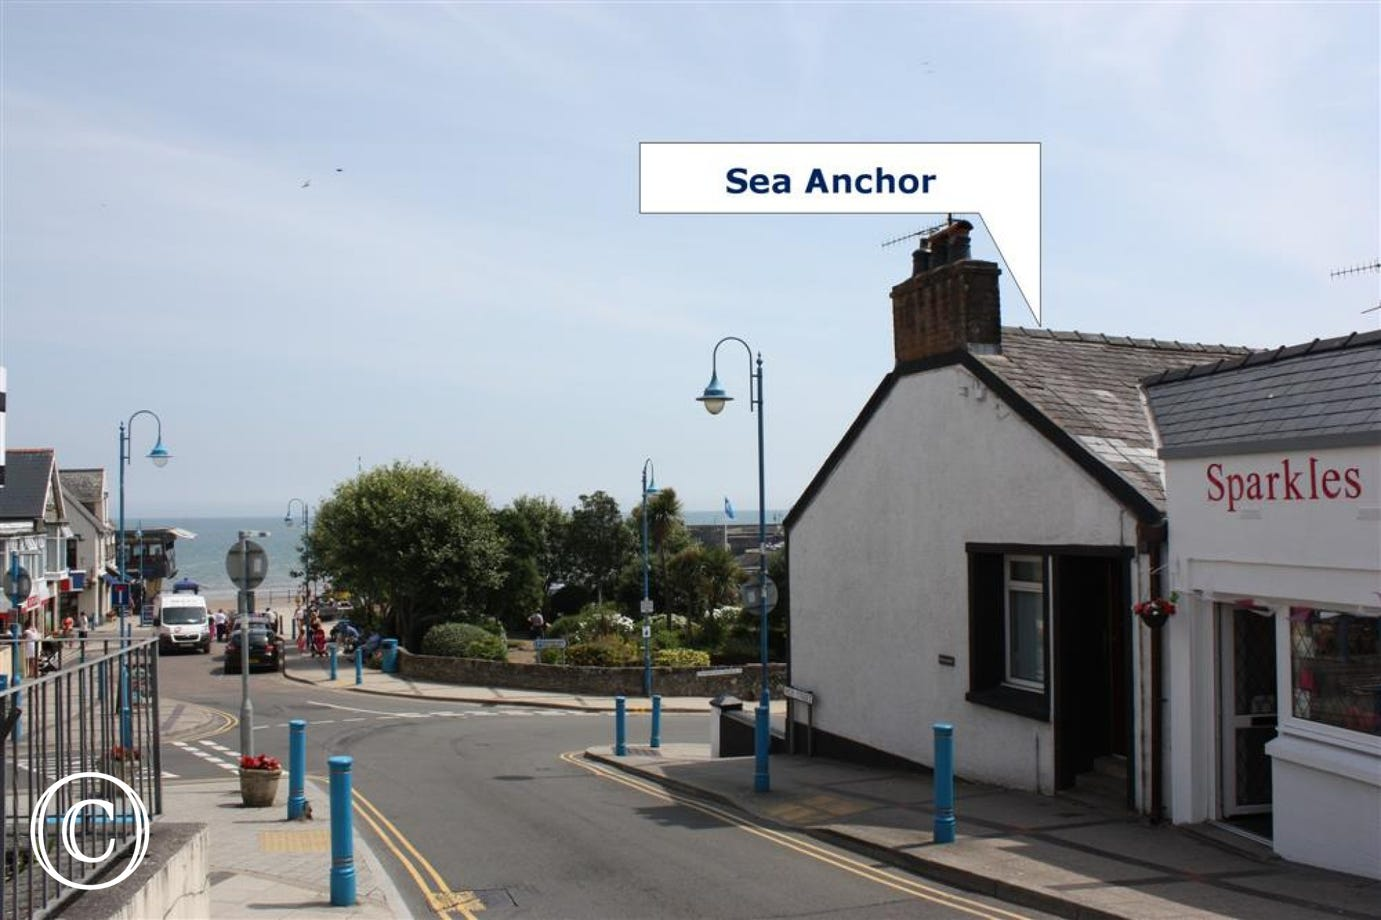 Sea Anchor is right in the heart of the village, just a stone's throw from the beach